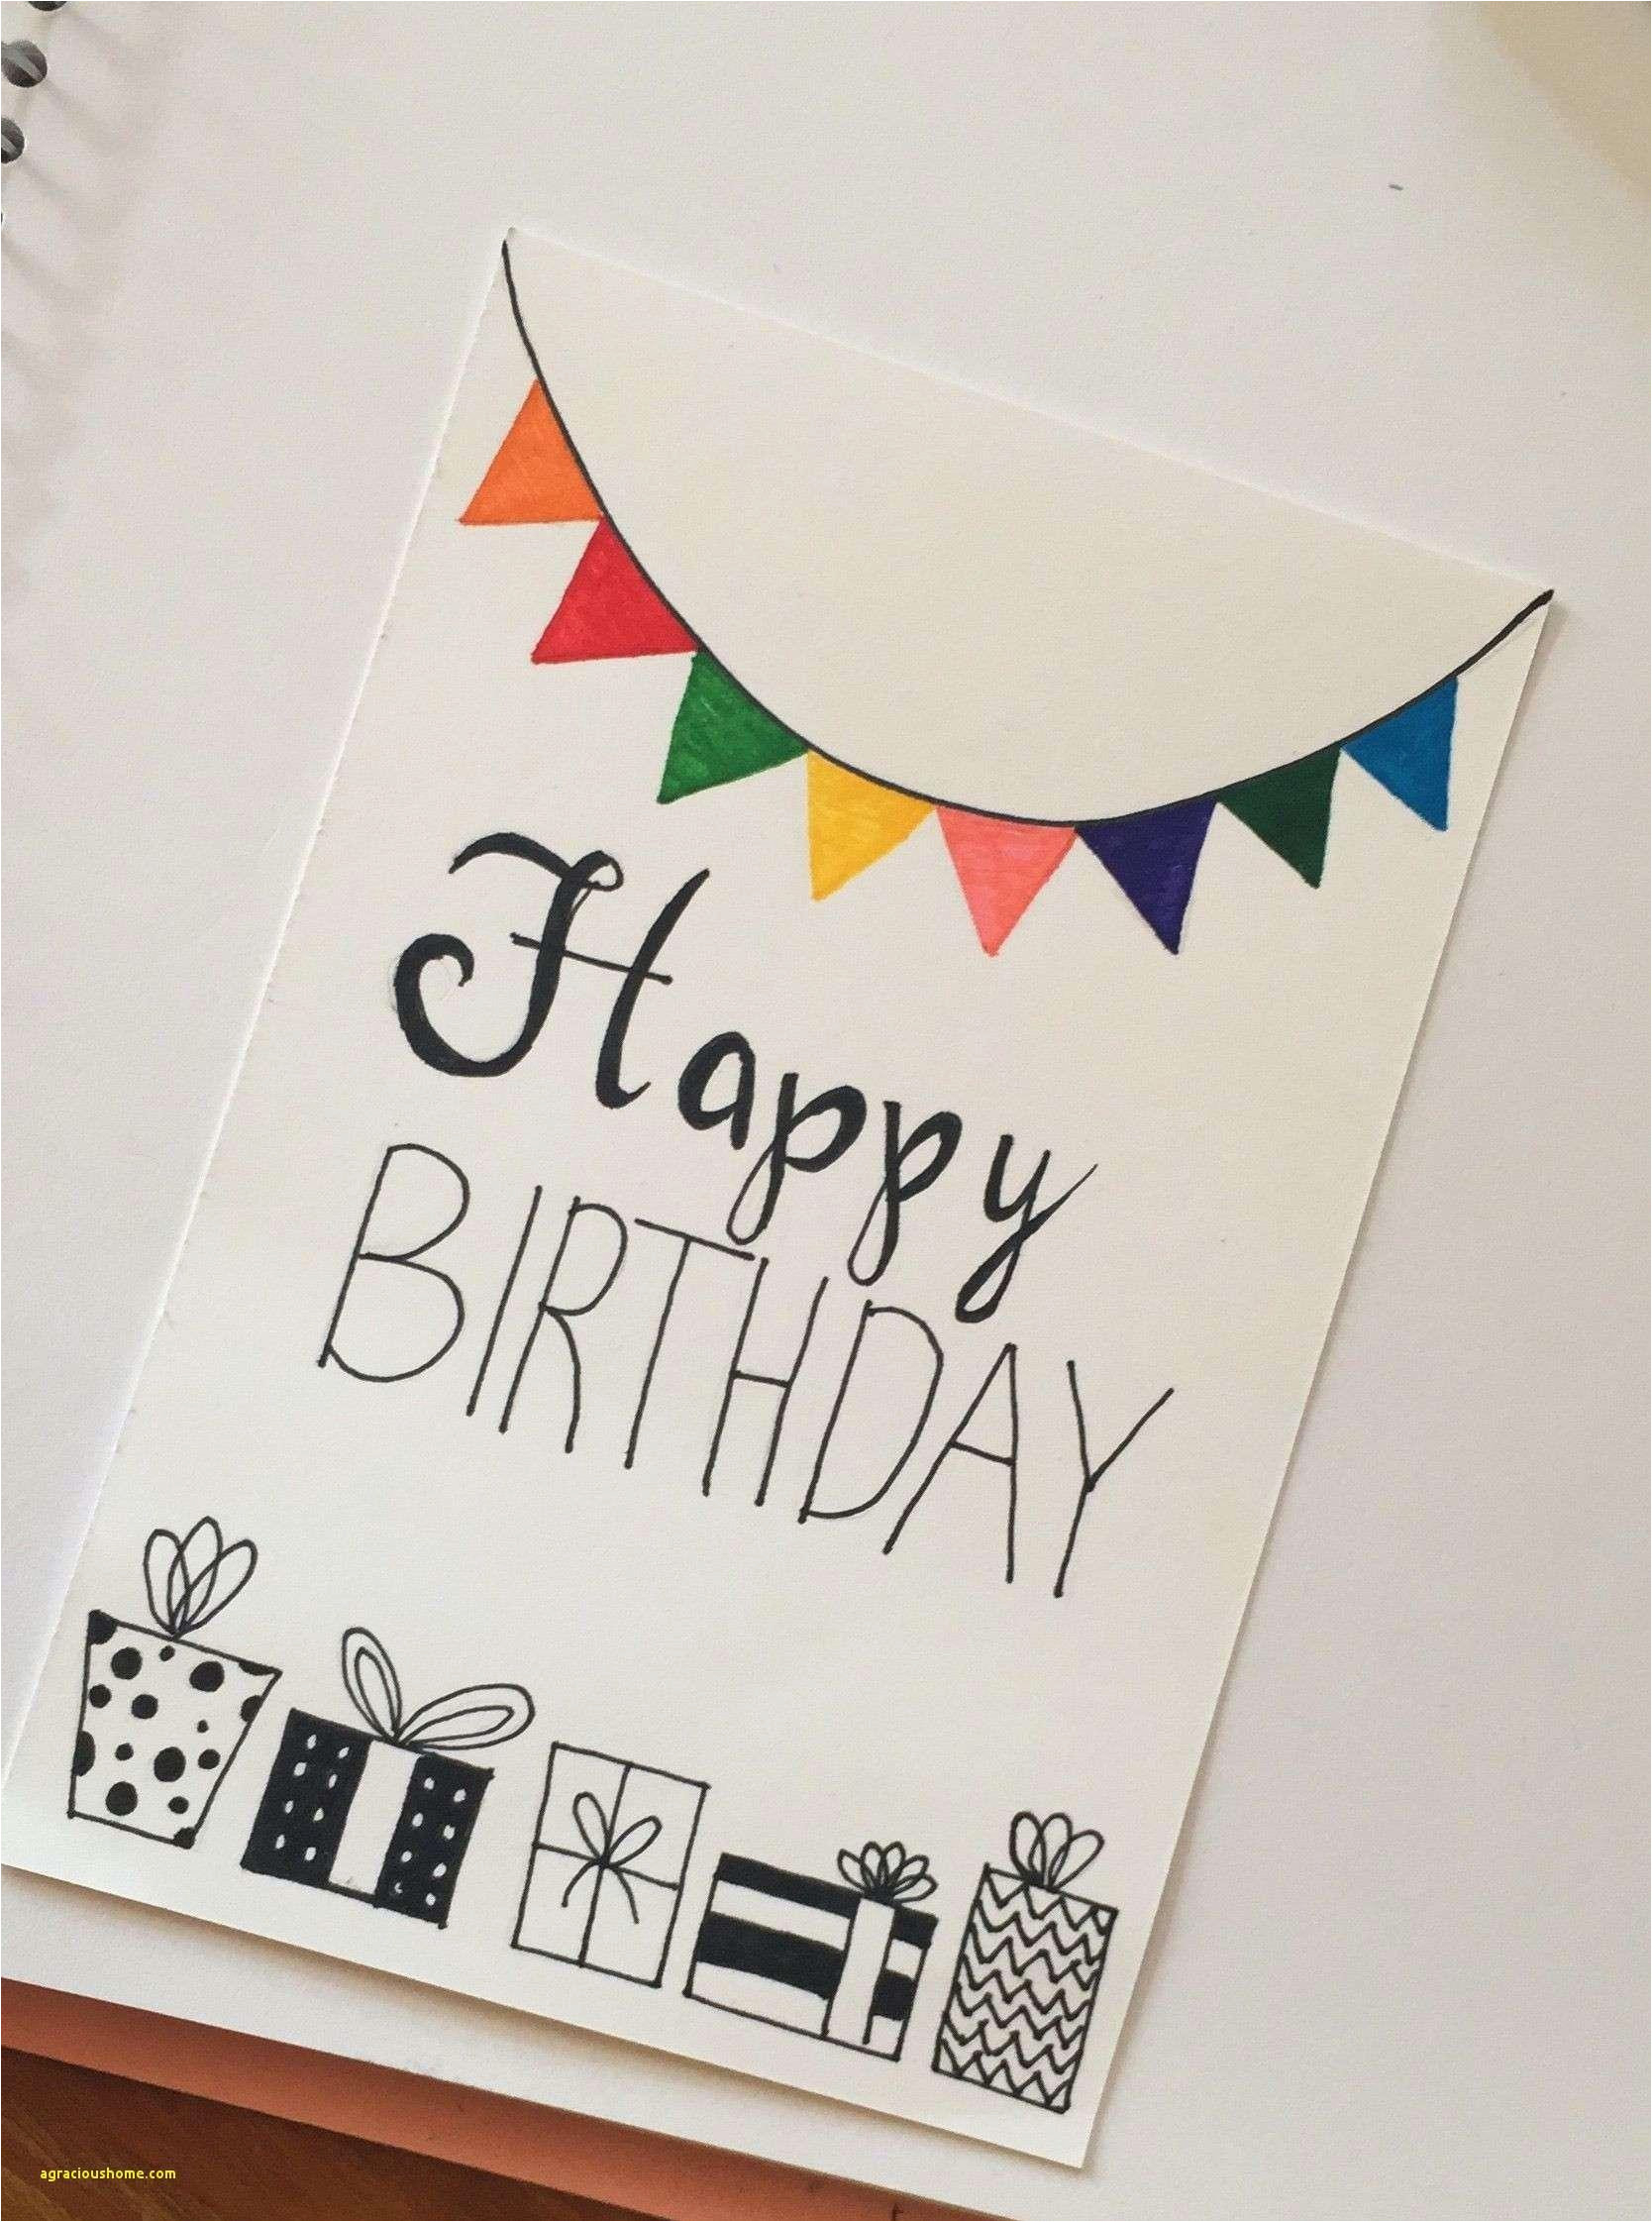 Mothers Birthday Card Ideas Diy Happy Birthday Gifts For Mom Gift Ideas